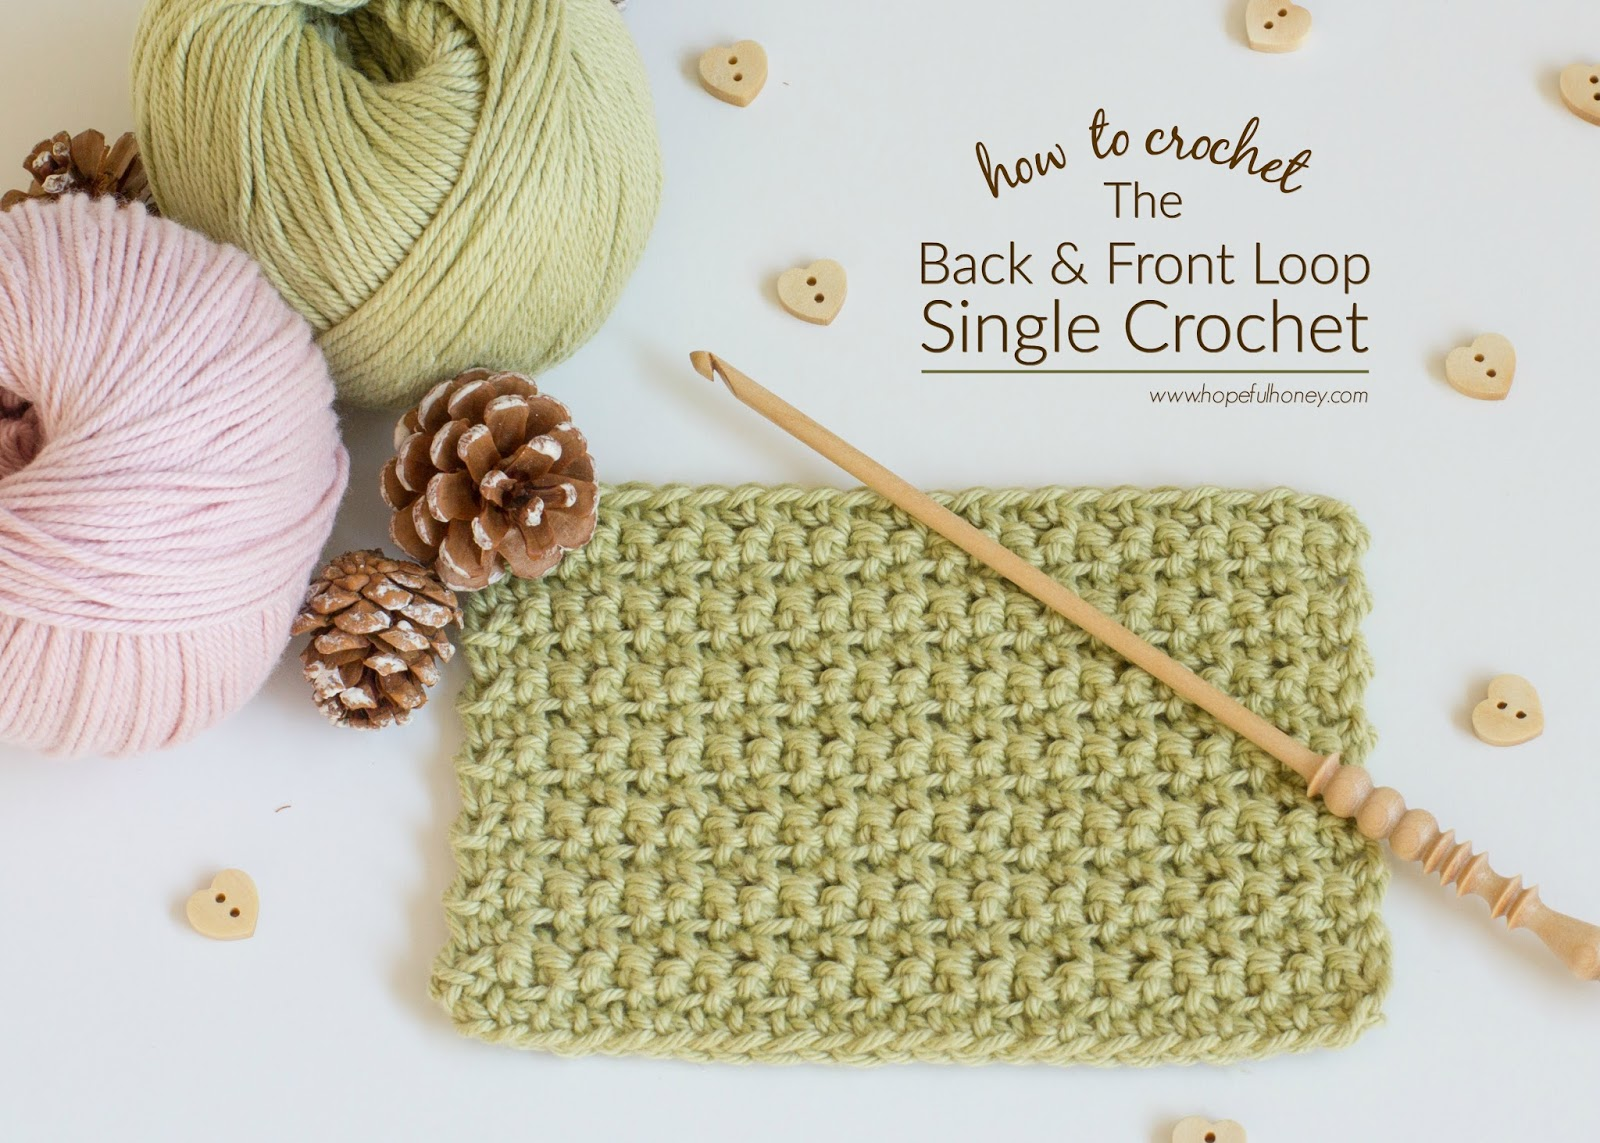 How To: Crochet The Back And Front Loop Single Crochet Stitch - Easy ...